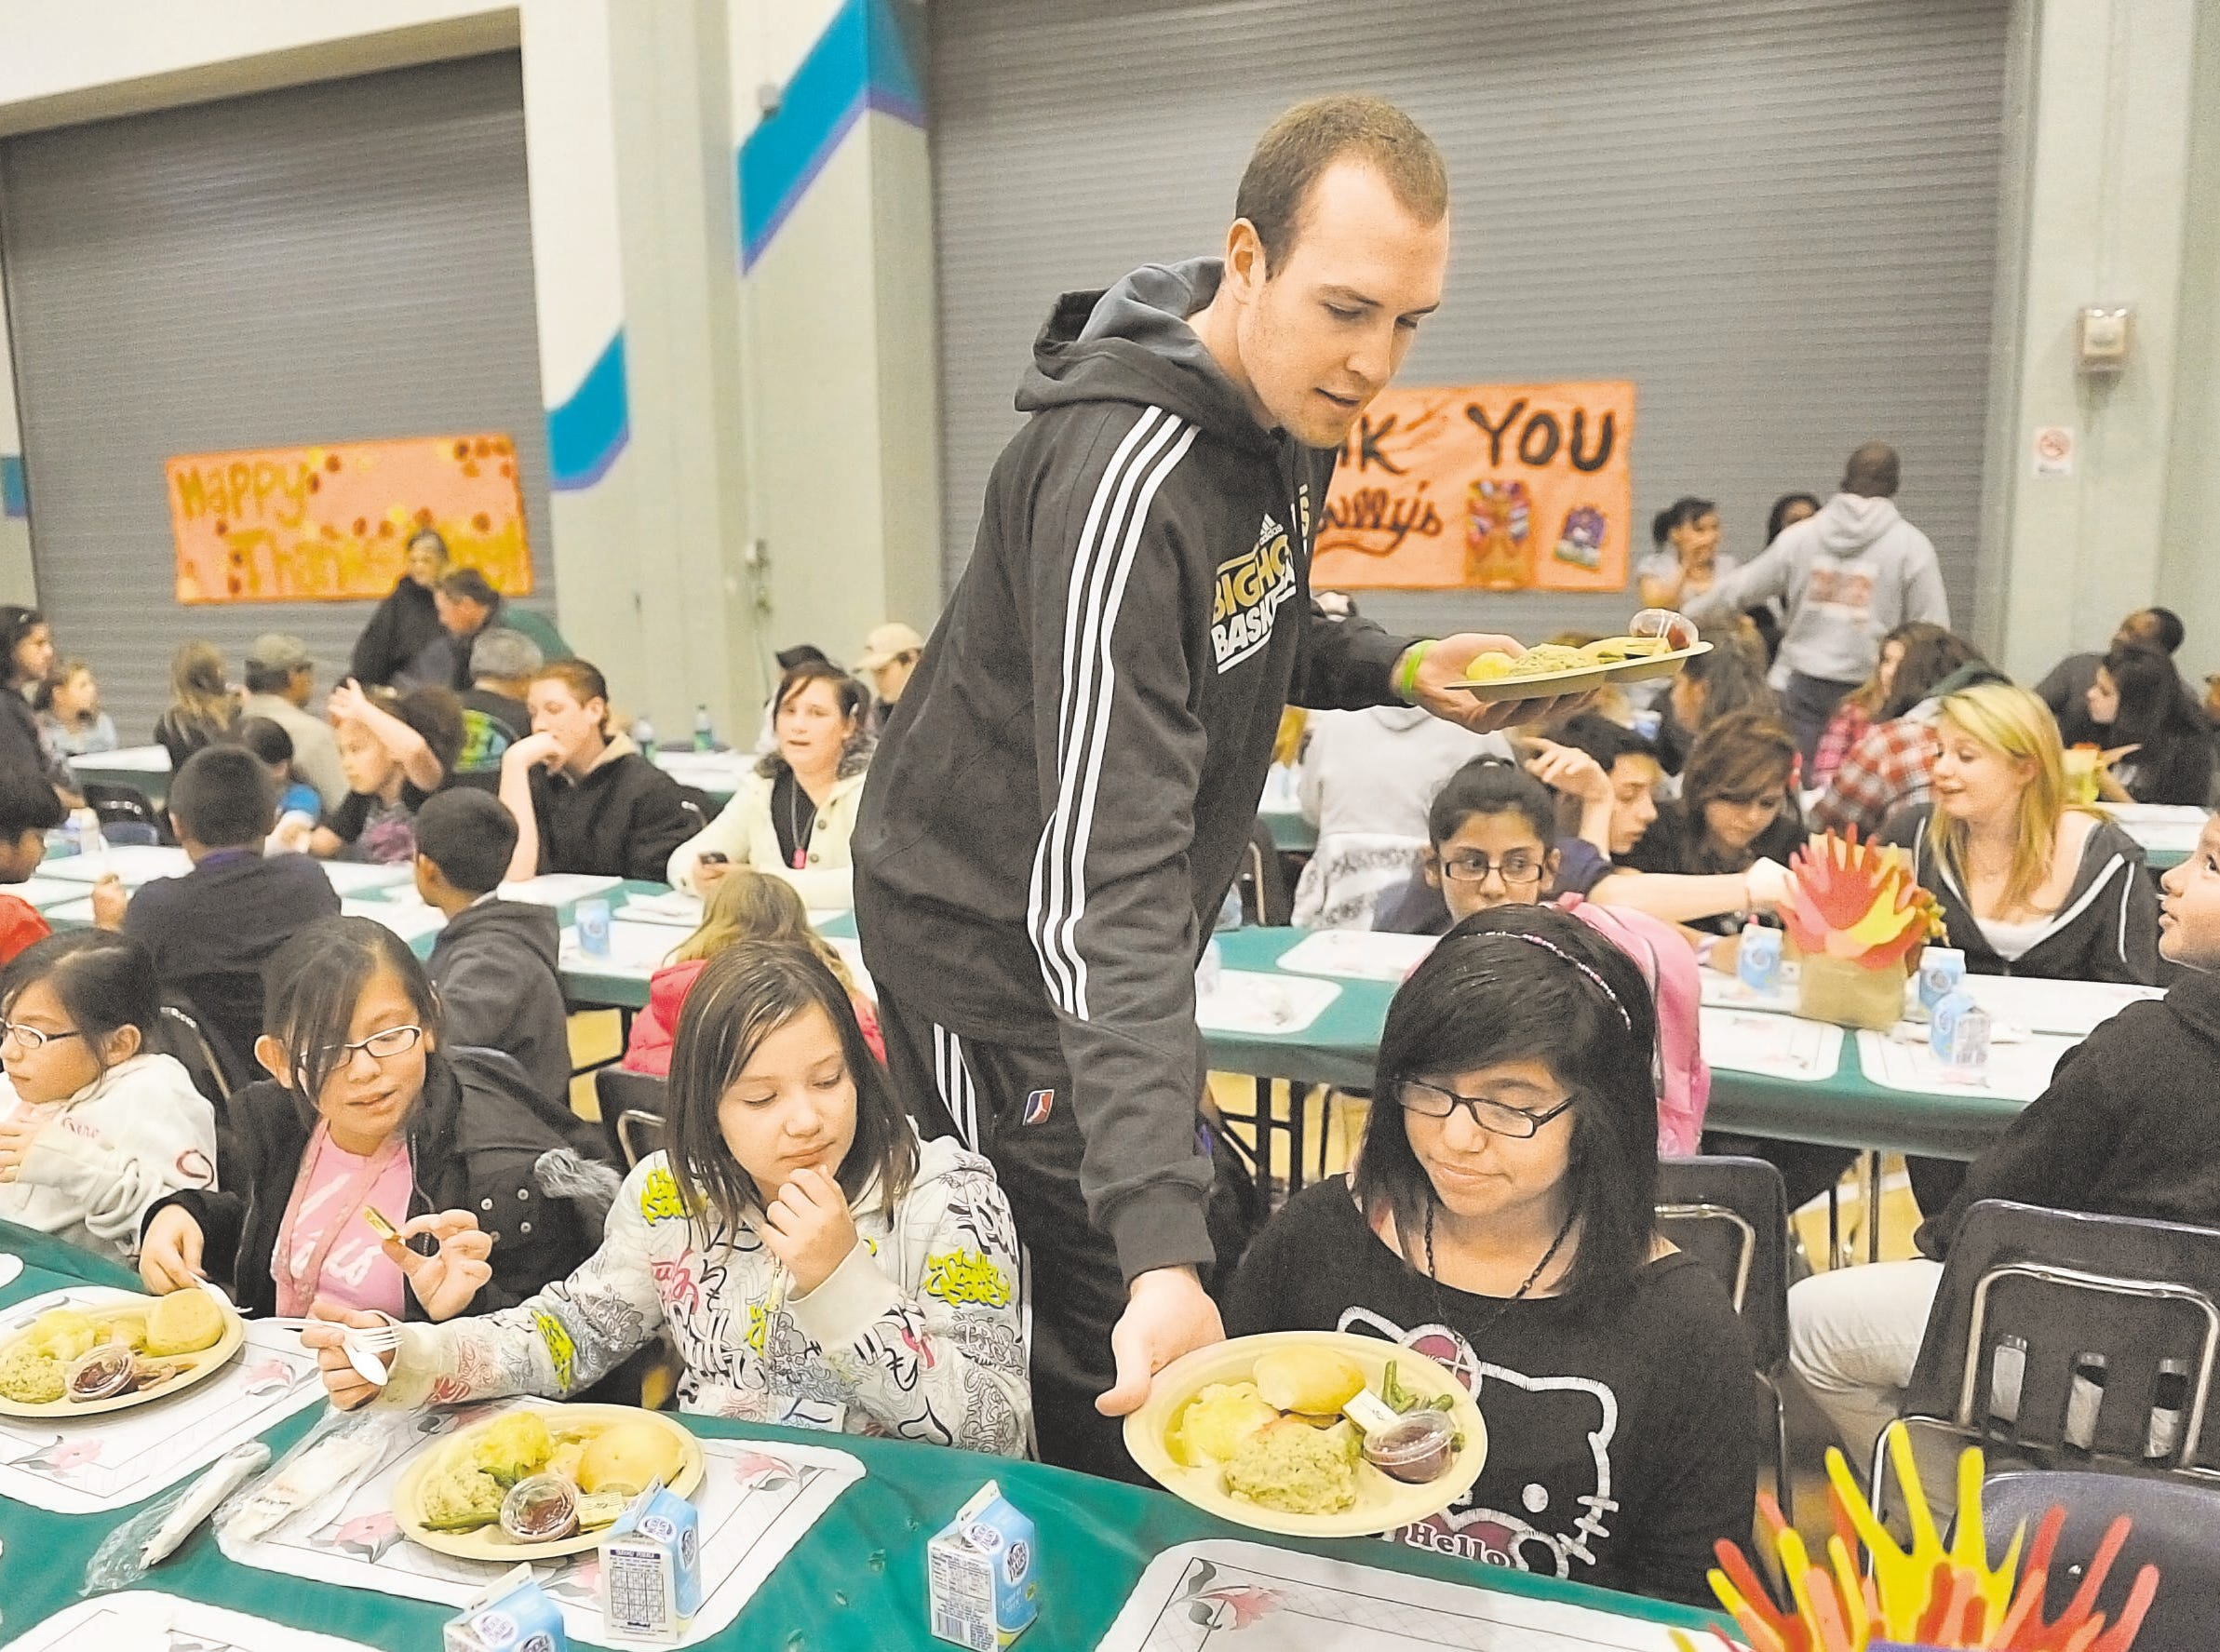 2011: Serving Thanksgiving meals at the Boys & Girls Club.